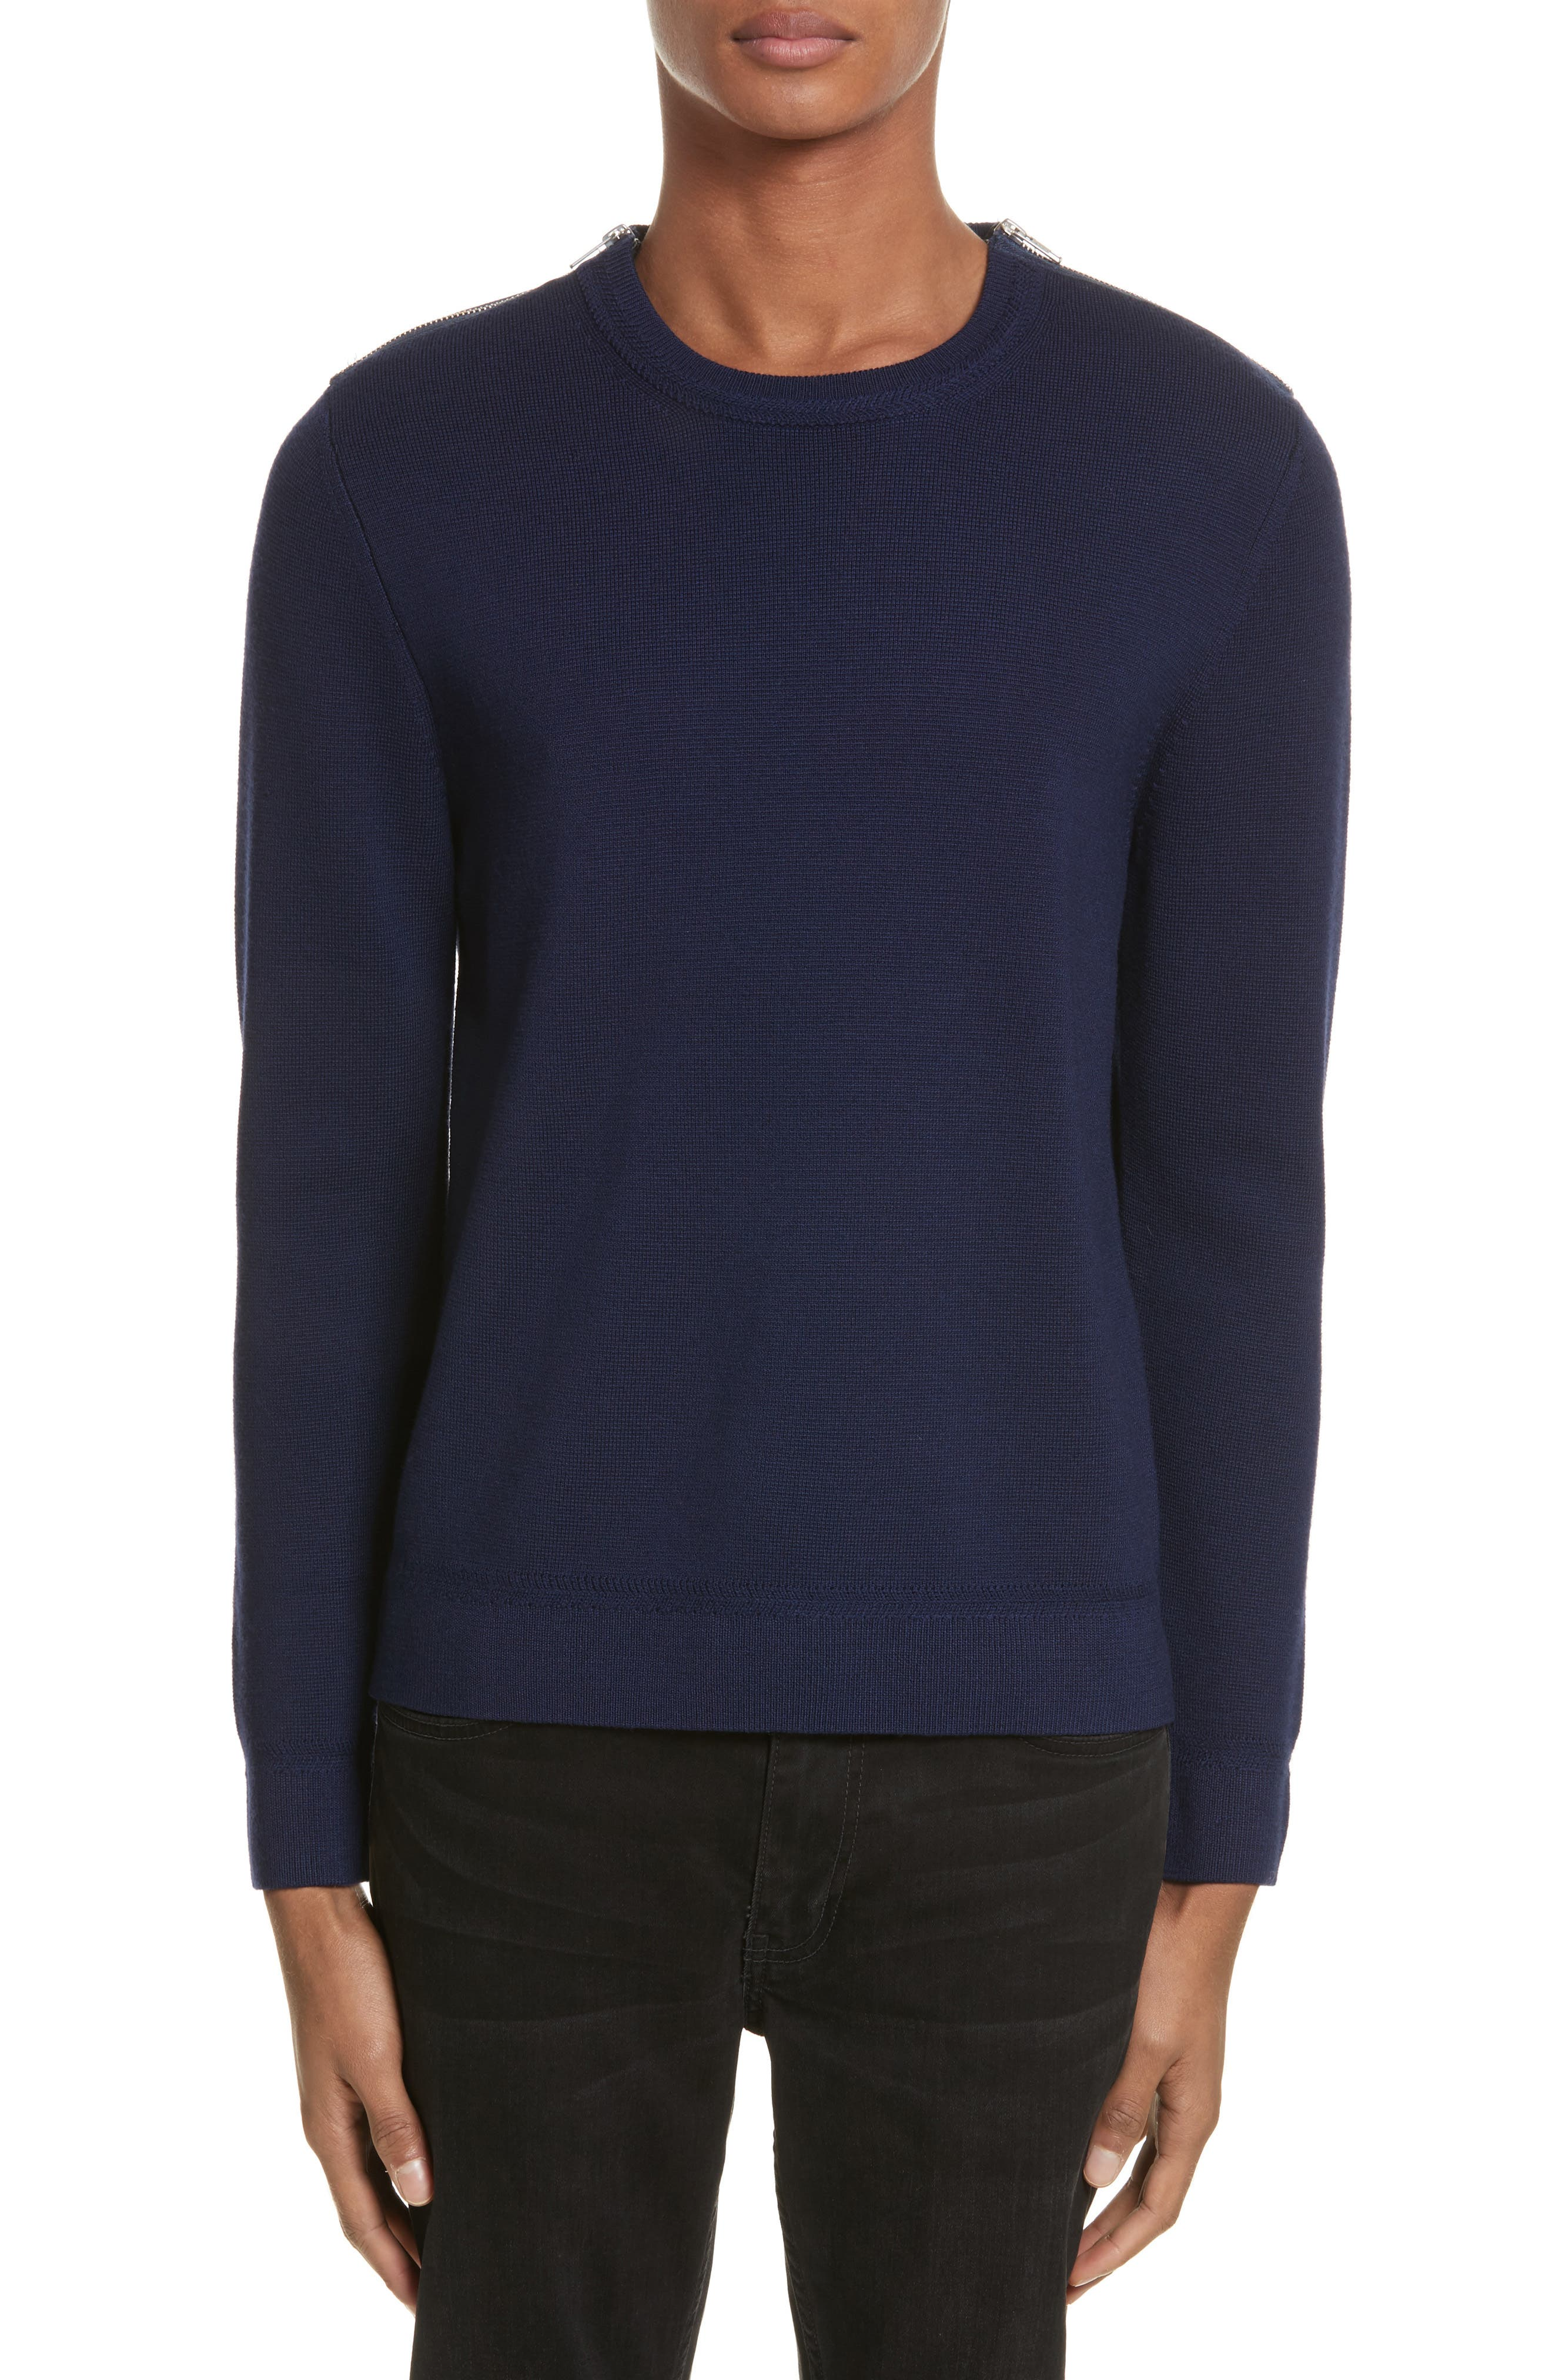 Merino Wool Blend Sweater with Shoulder Zip Trim,                             Main thumbnail 1, color,                             Navy